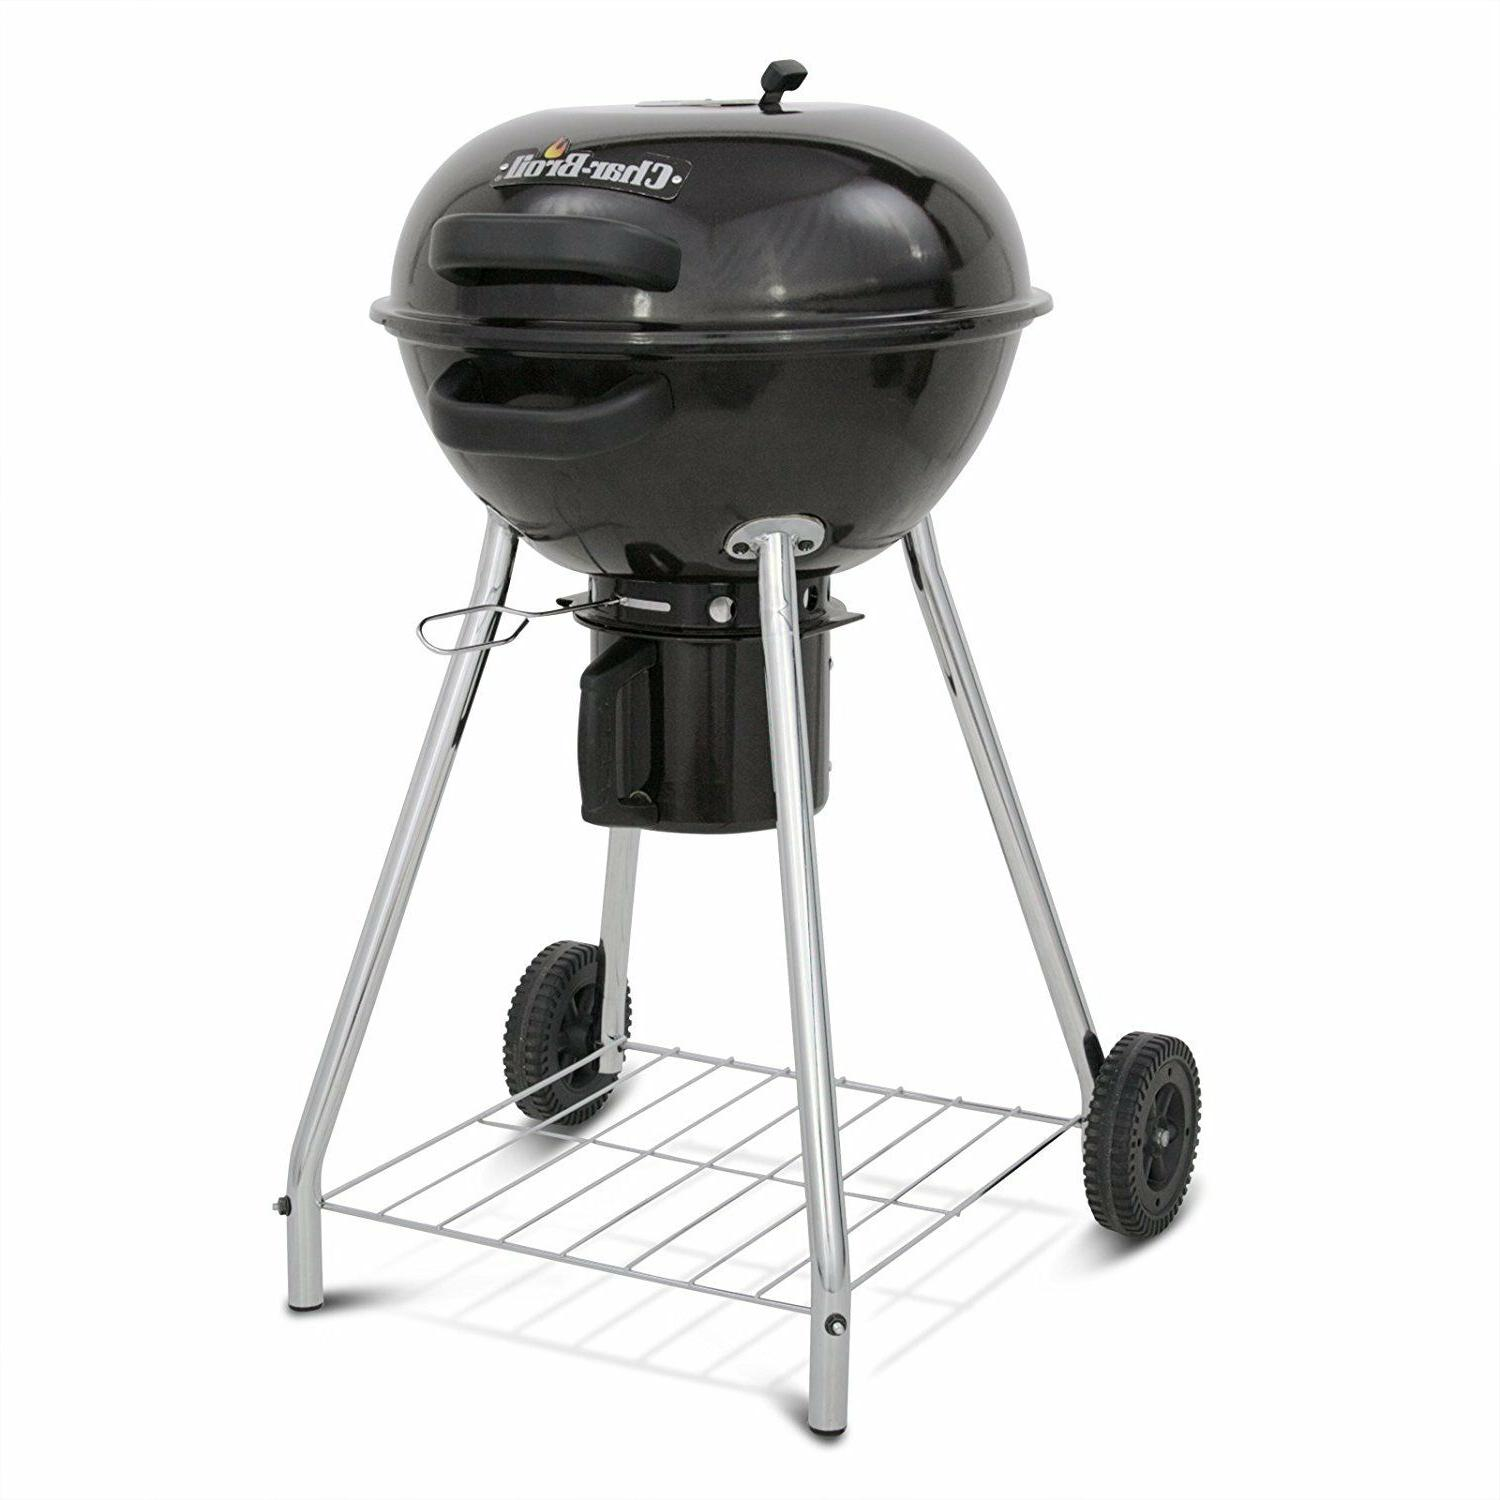 *NEW* Char-Broil 18.5-inch Charcoal Kettle Grill